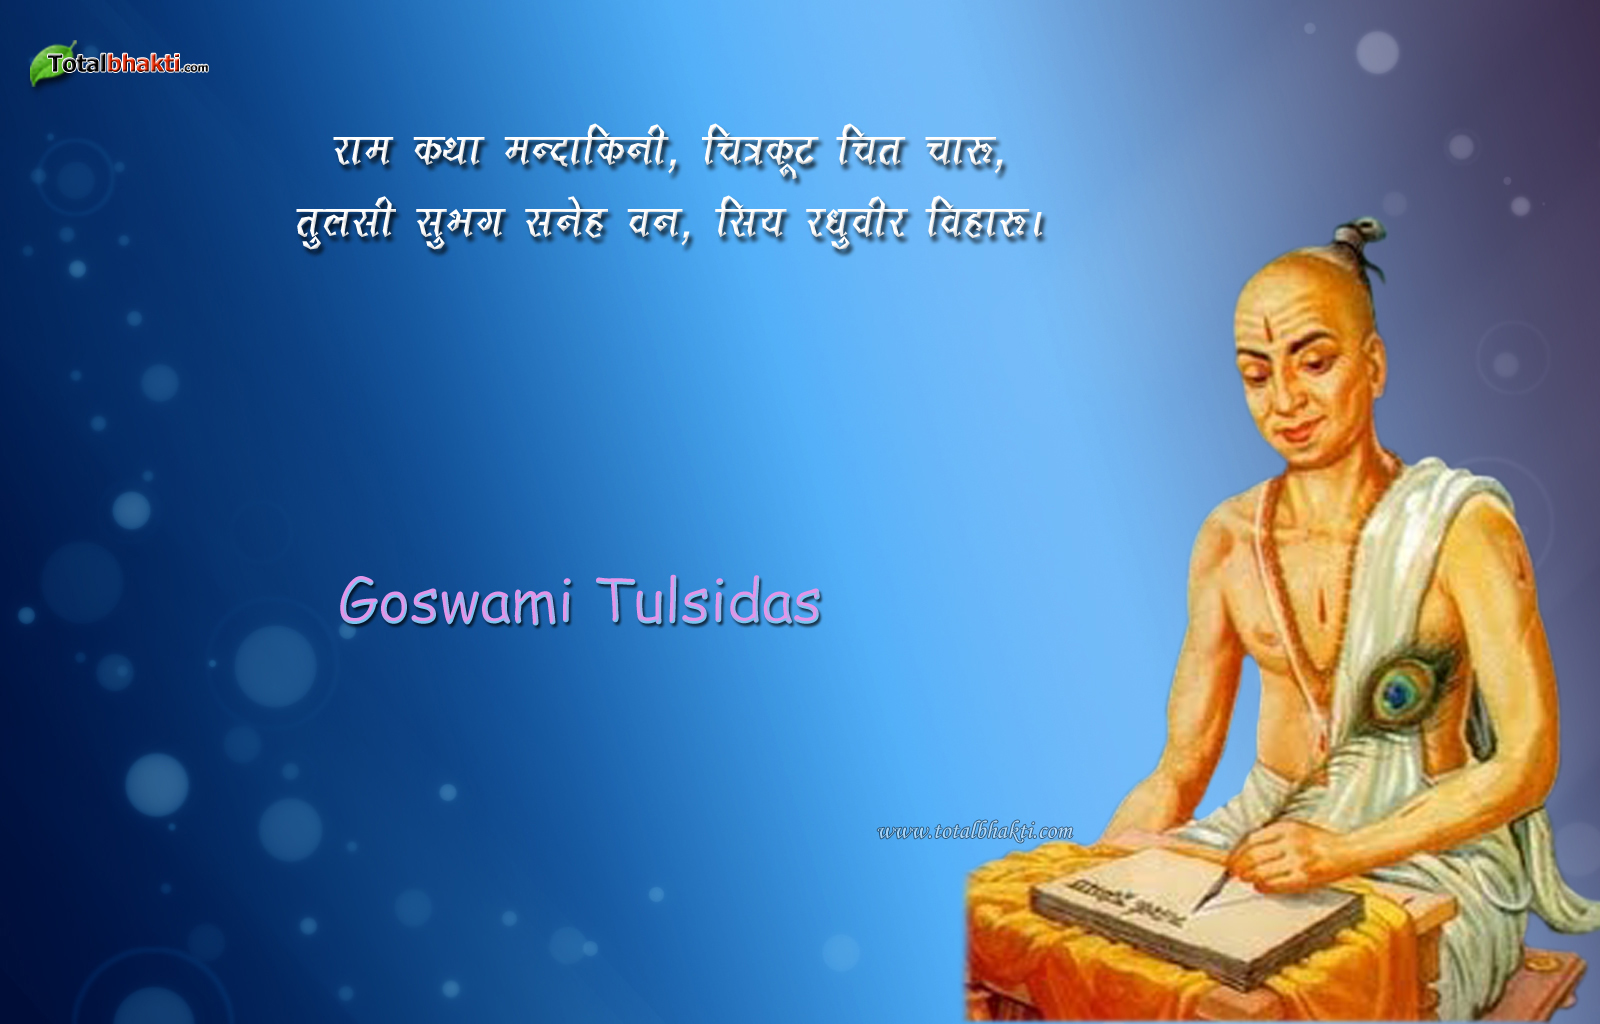 ... Happy Tulsidas Jayanti 2015 Images Photos Wallpapers Whatsapp FB DP